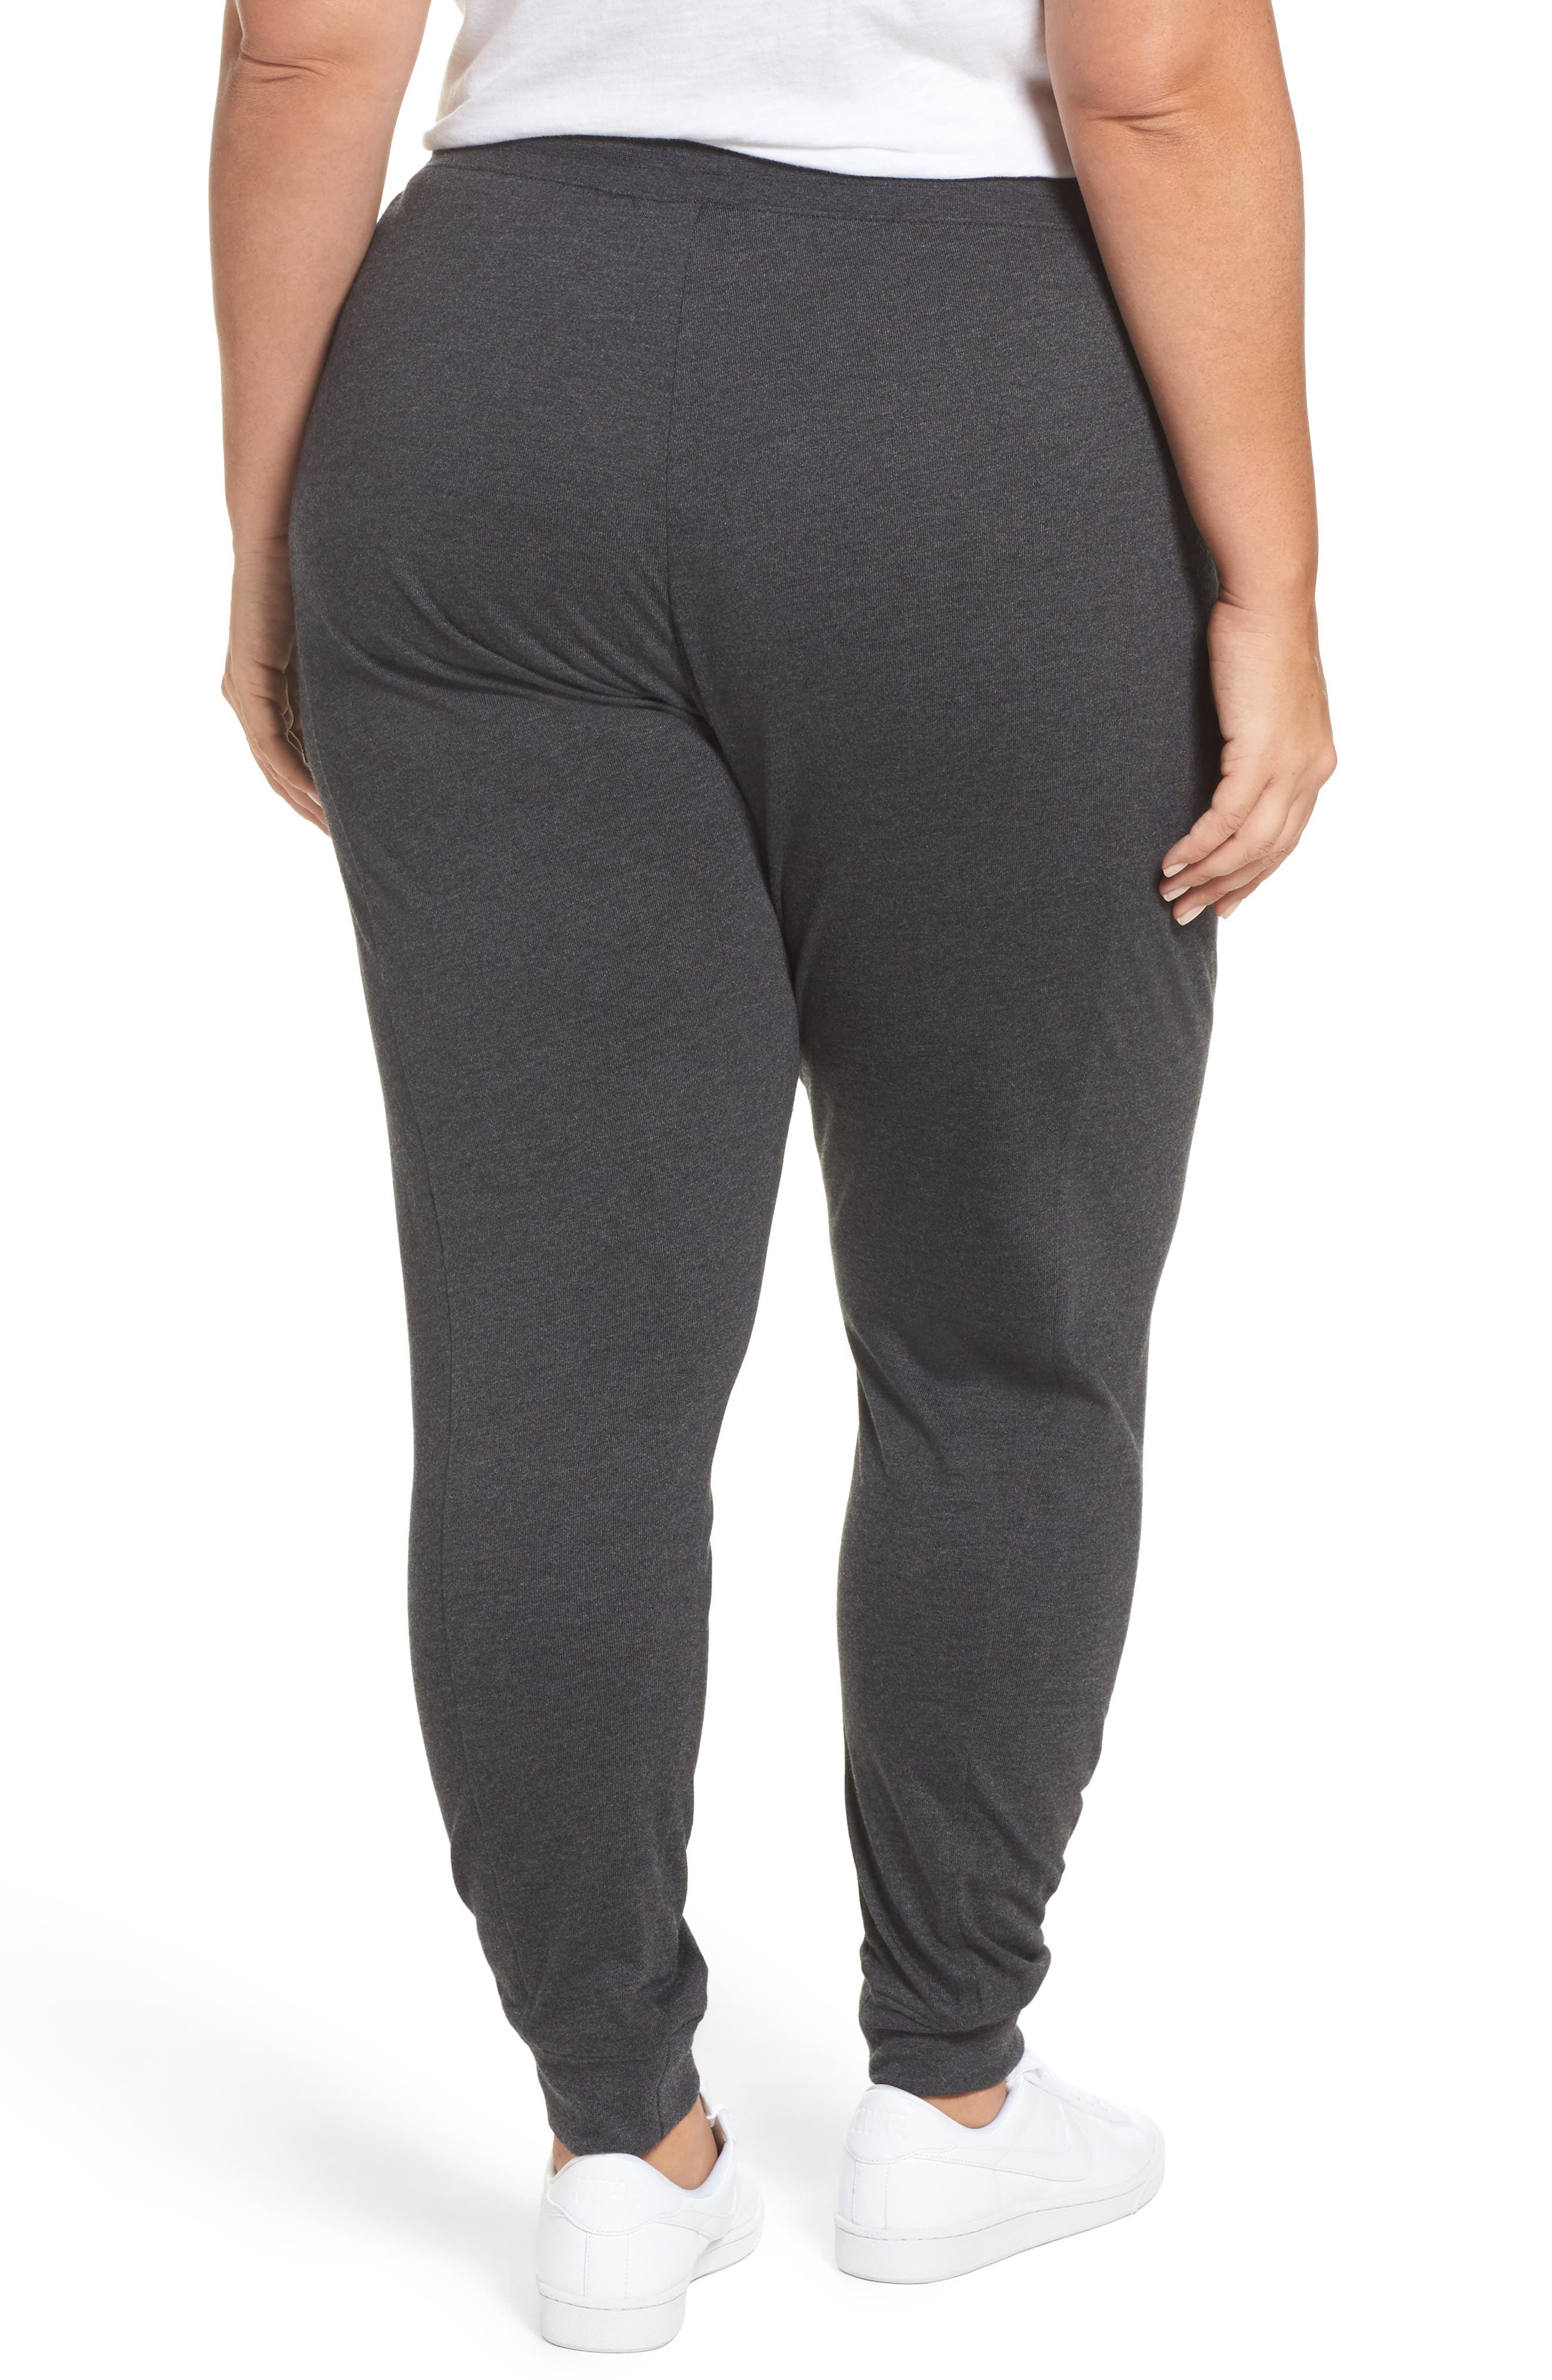 Sportswear Gym Classic Pants,                             Alternate thumbnail 2, color,                             012